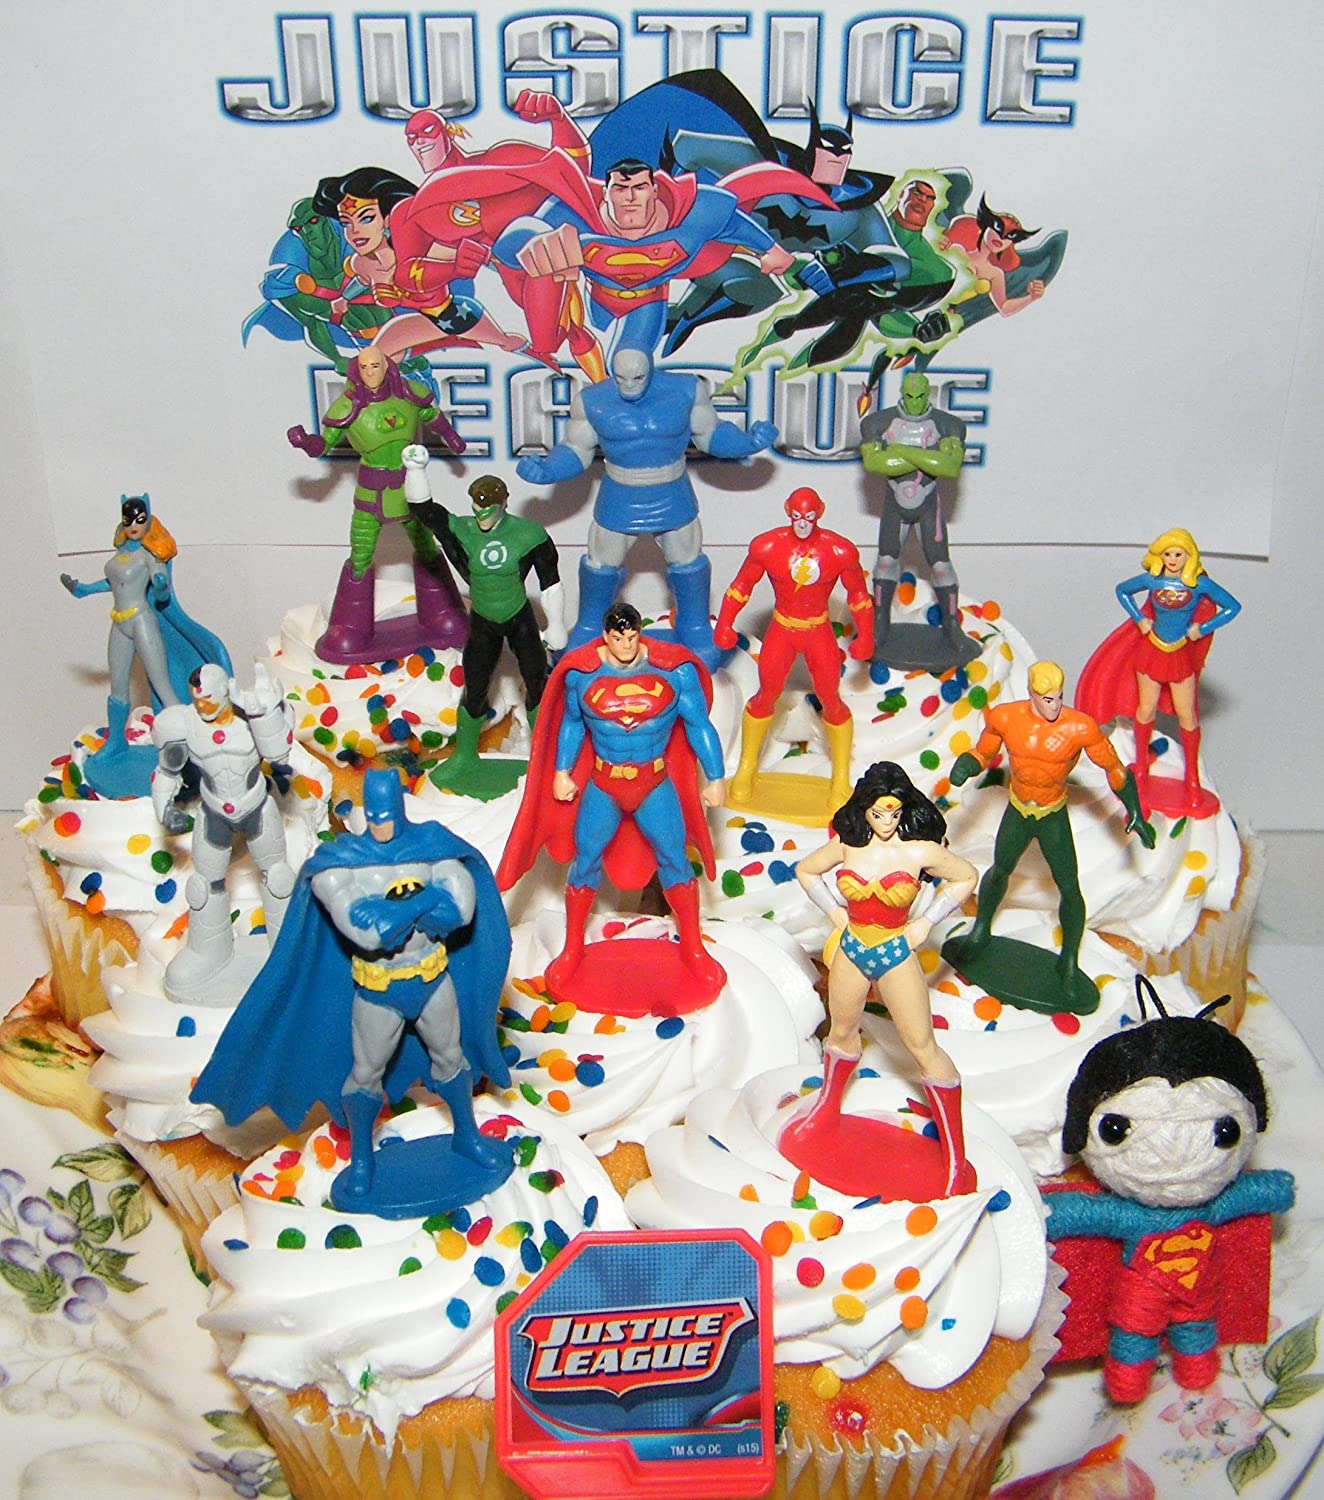 Amazon Com Justice League Deluxe Cake Toppers Cupcake Decorations